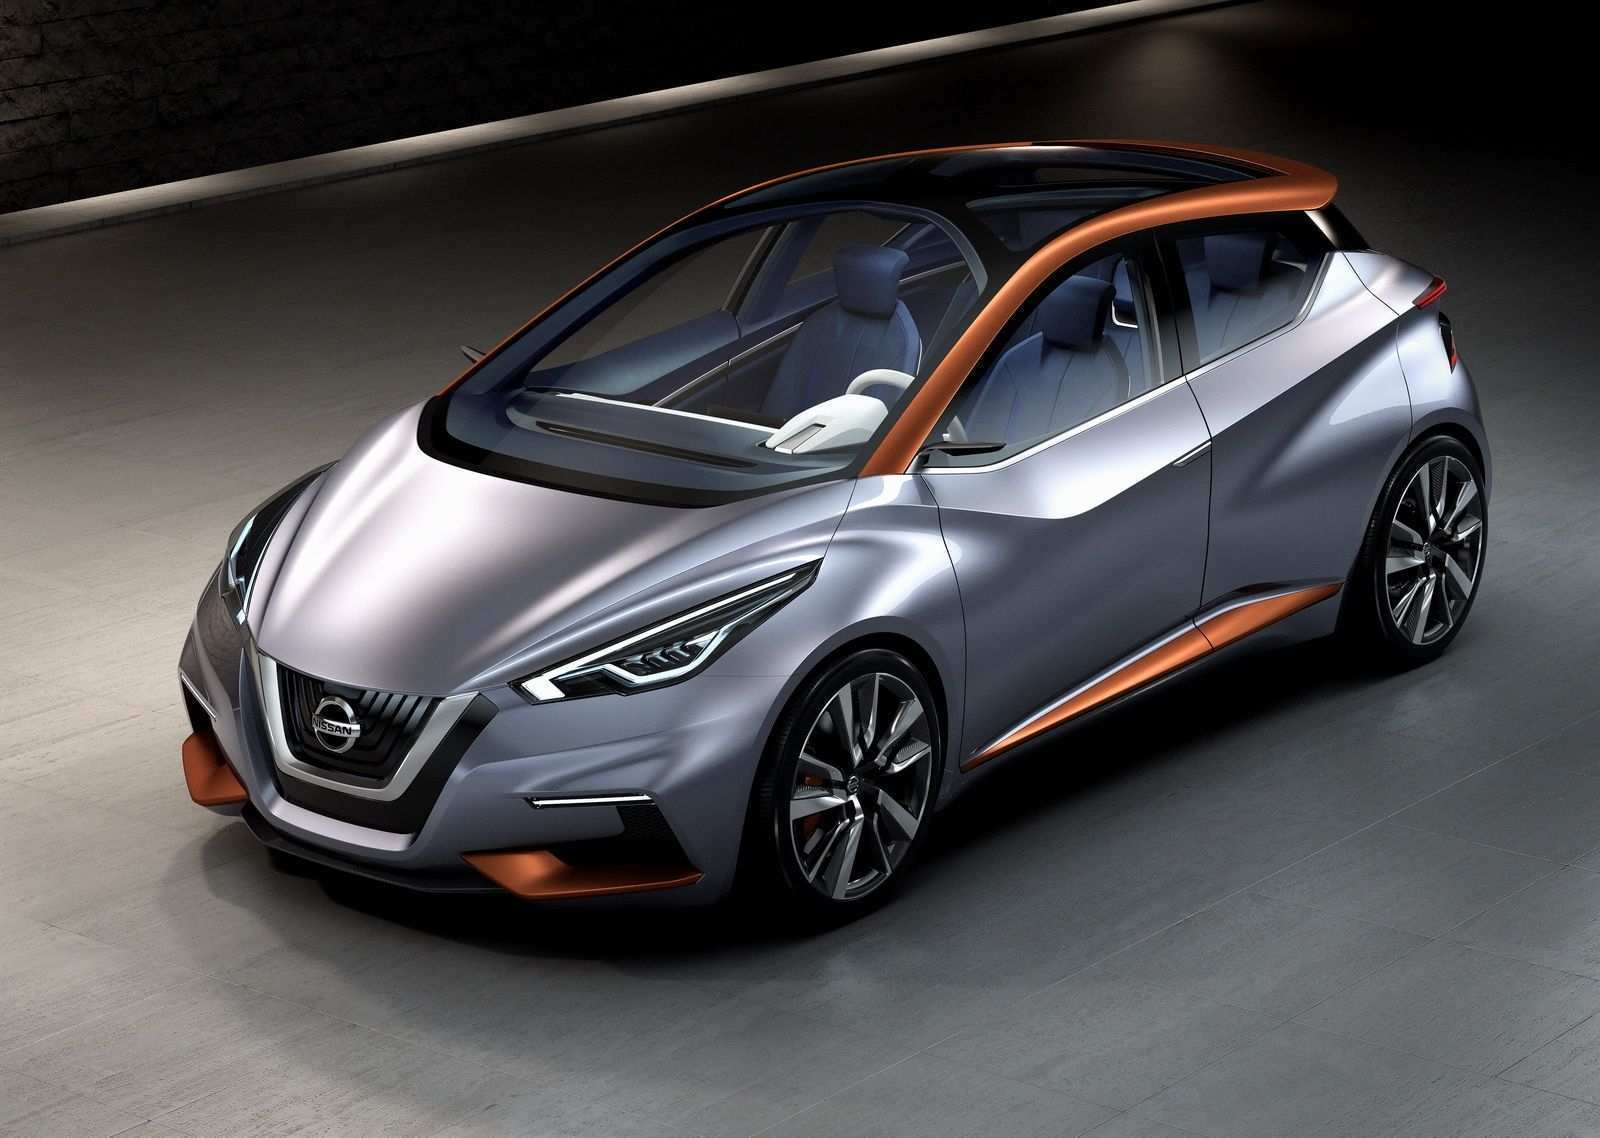 39 Gallery of Nissan Micra 2020 Rumors with Nissan Micra 2020